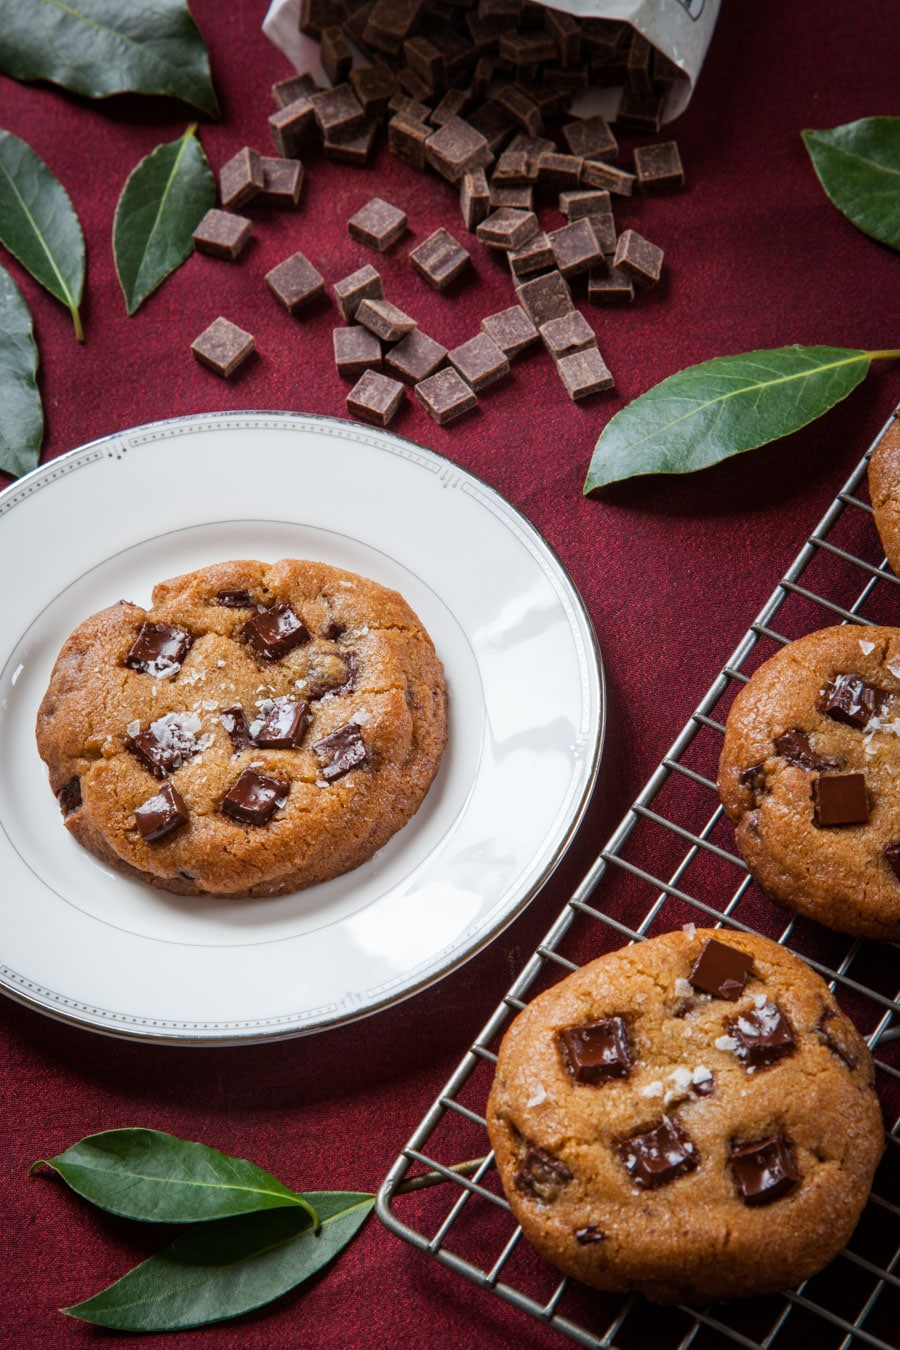 Bay Leaf, Vanilla, and Brown Butter Chocolate Chunk Cookies. Photo and recipe by Irvin Lin of Eat the Love.